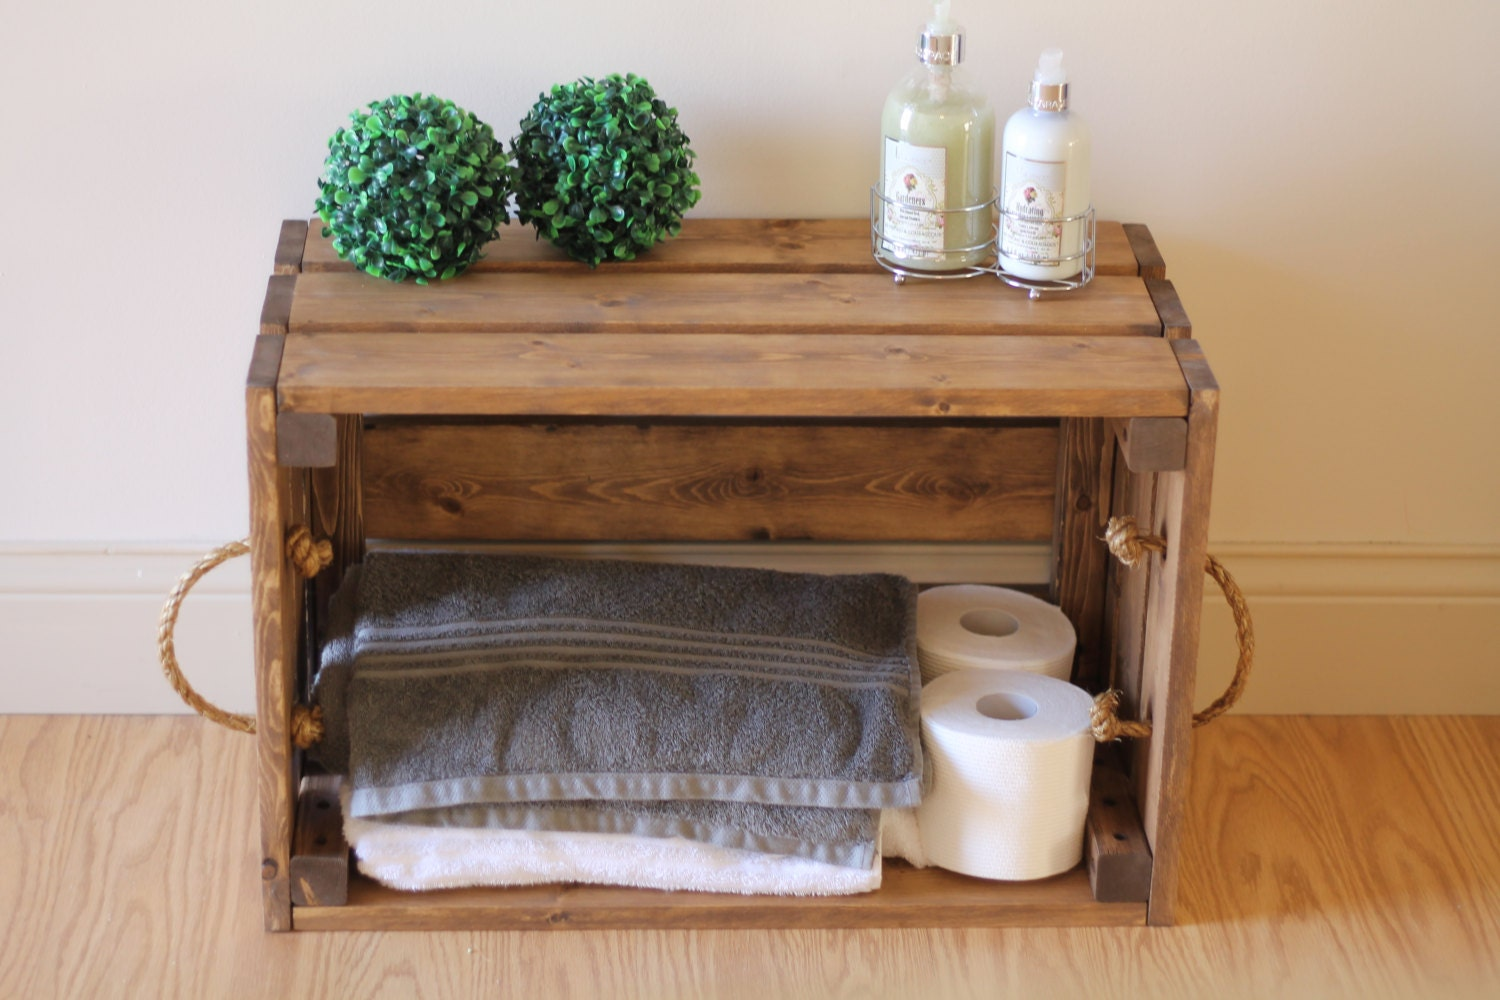 Rustic bathroom decor - Rustic Wooden Crate Rustic Bathroom Storage Bathroom Shelf Rustic Towel Rack Rustic